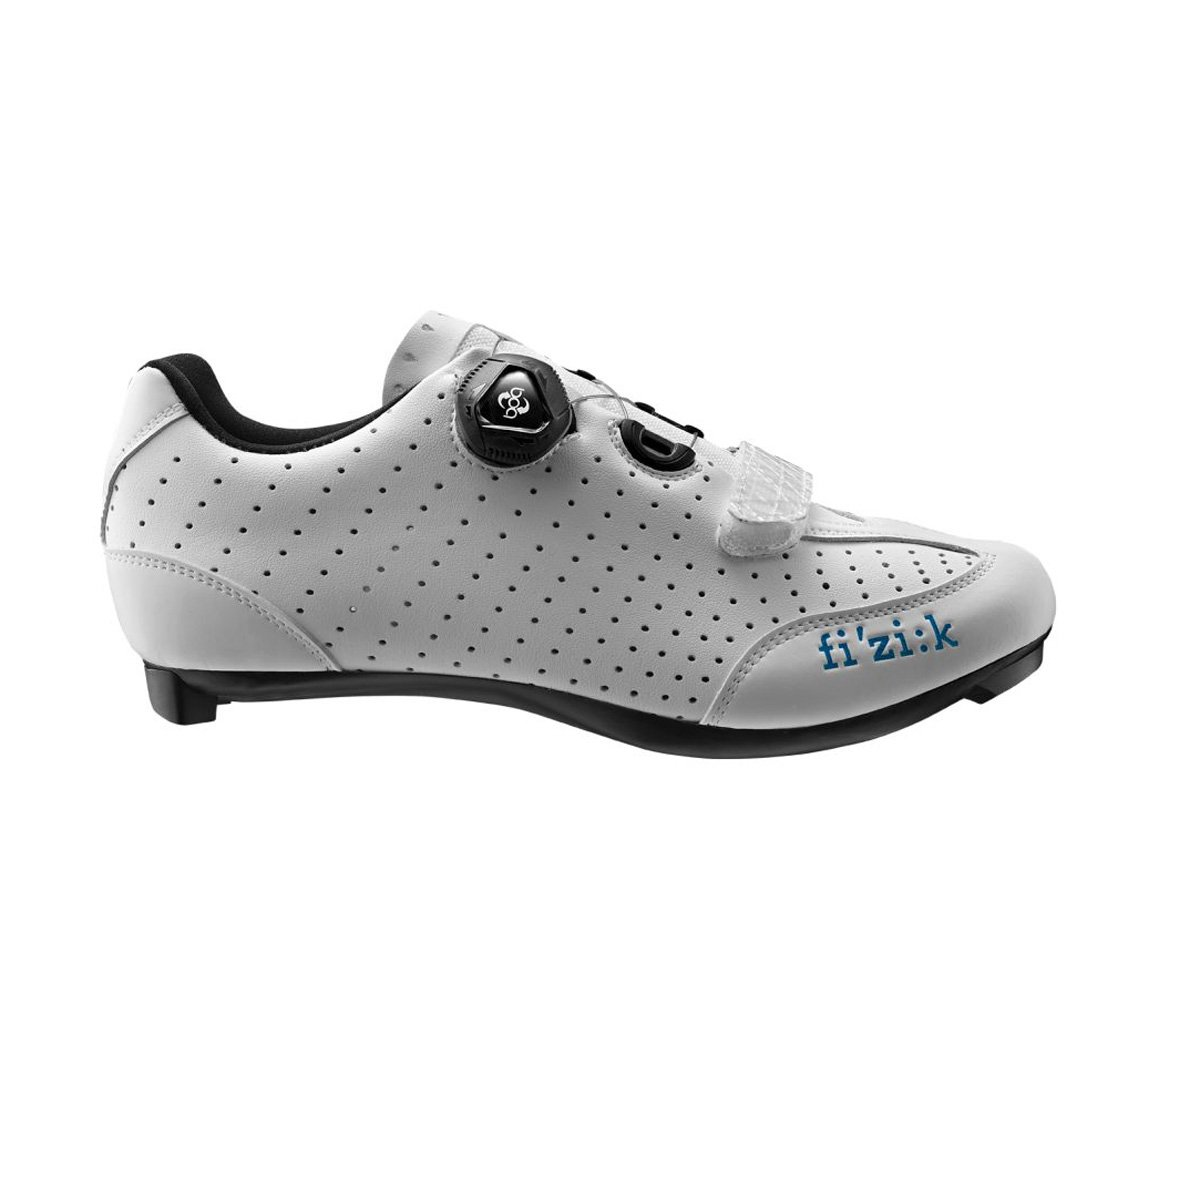 Fizik Womens R3B Donna Boa Road Sport Cycling Shoes White w//Turquoise